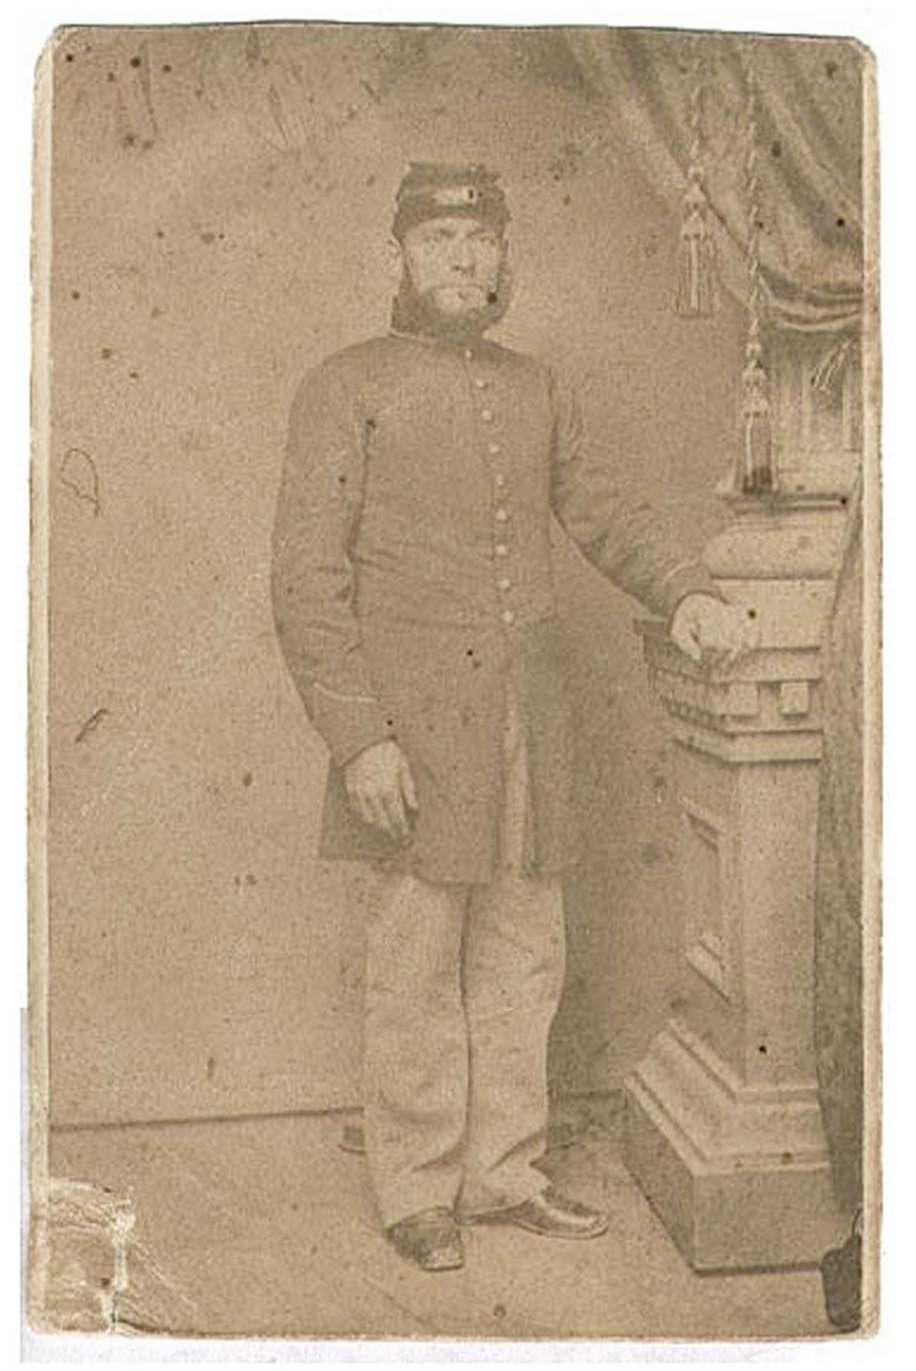 ID'D CDV FULL LENGTH VIEW - MAHLON H. PULLMAN, 34TH PENNSYLVANIA INFANTRY